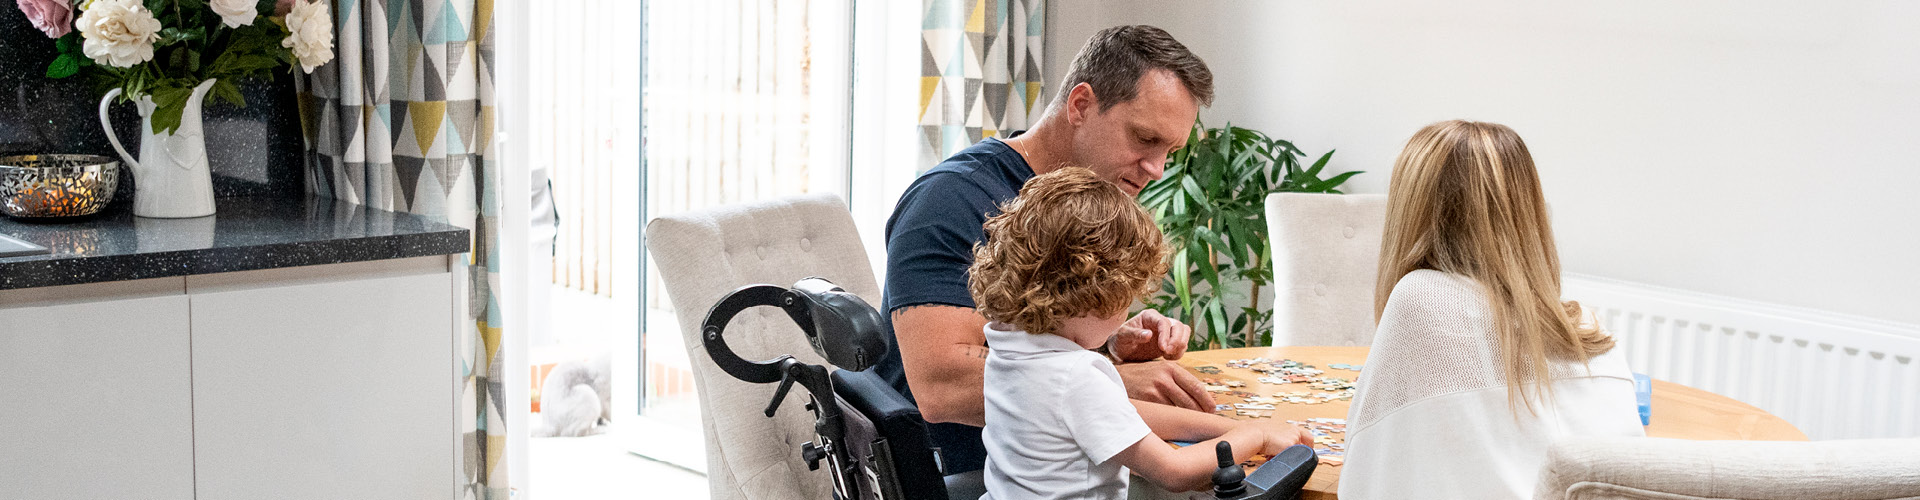 A father and two children doing a puzzle at a kitchen table. One child is a wheelchair user.